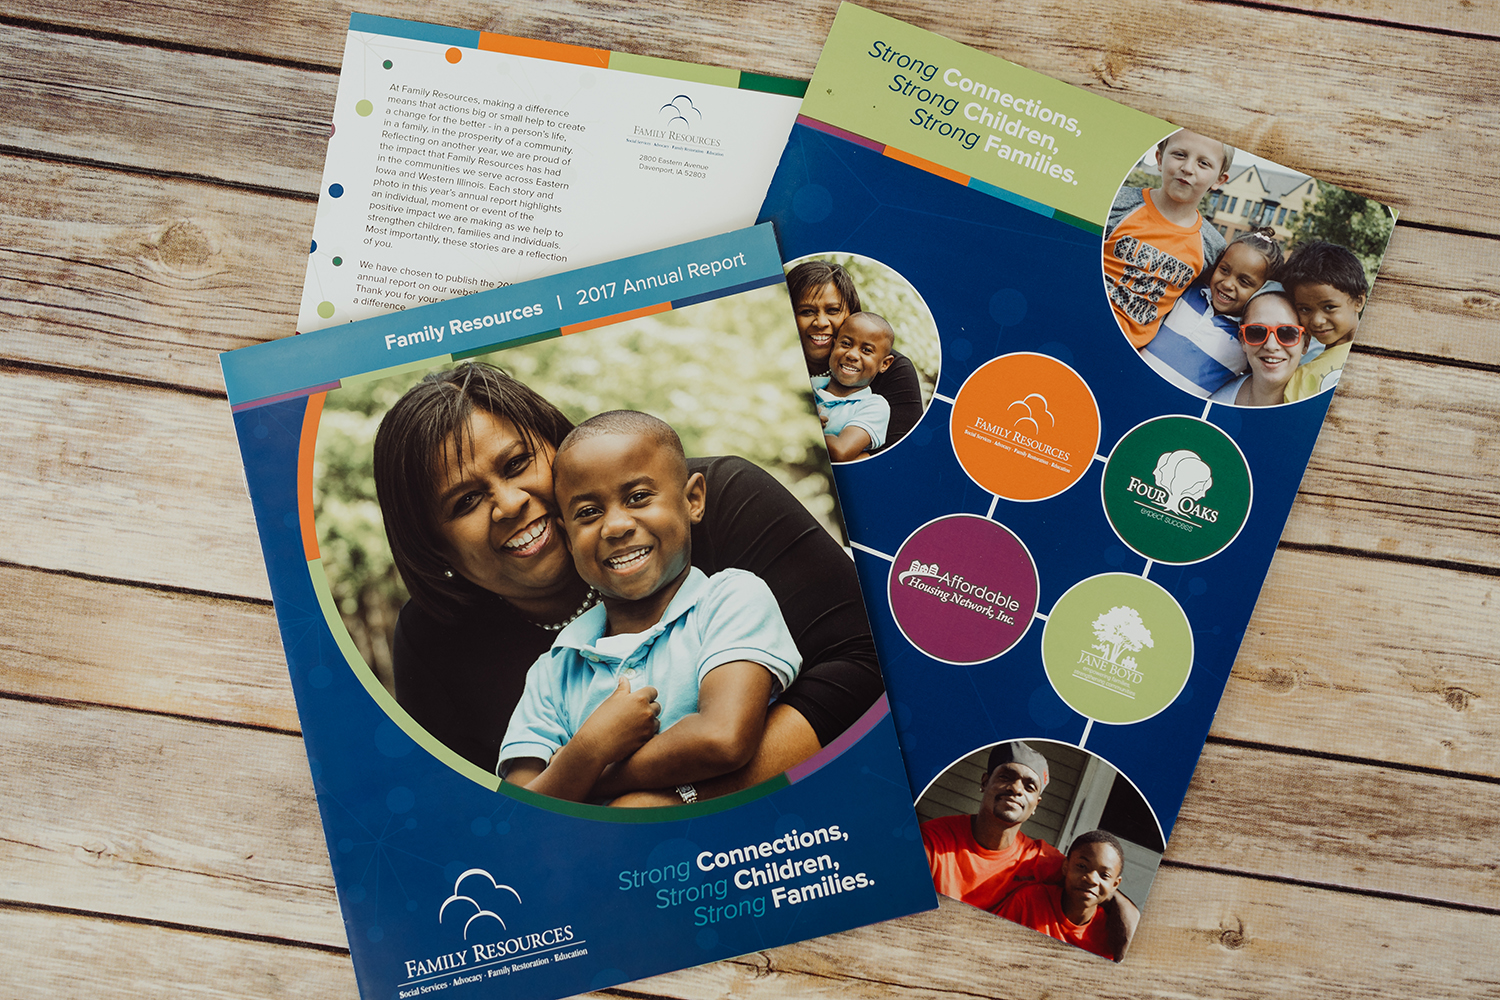 Family Resources, Four Oaks, AHNI & Jane Boyd Annual Report